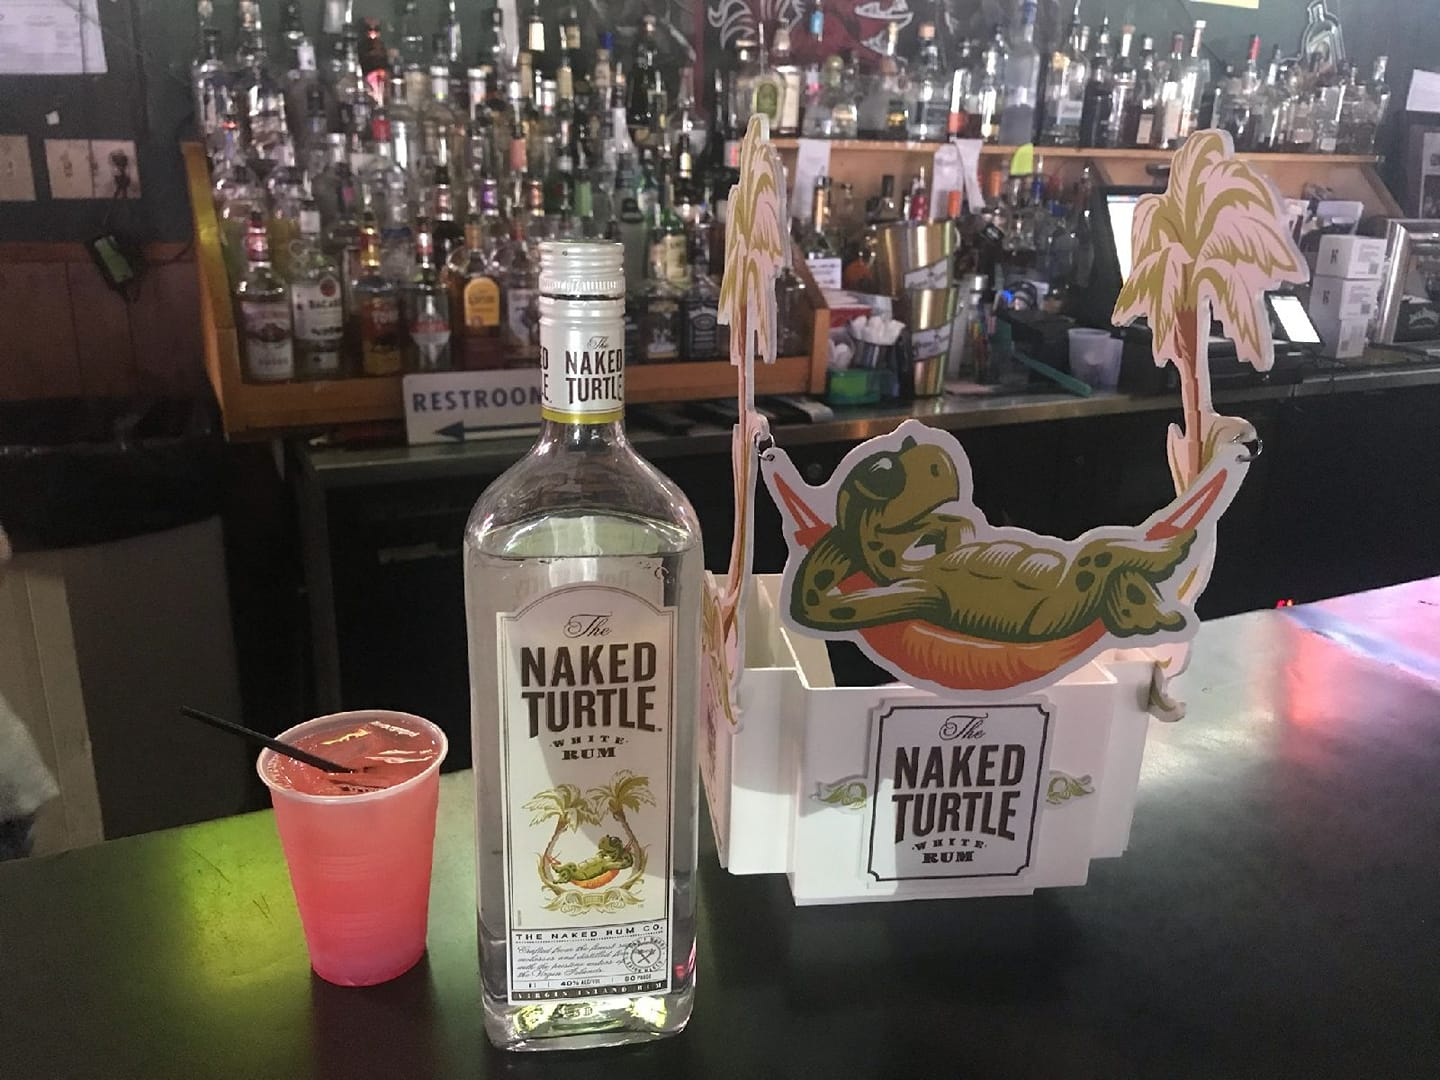 Naked turtle liquor bottle next to cocktail